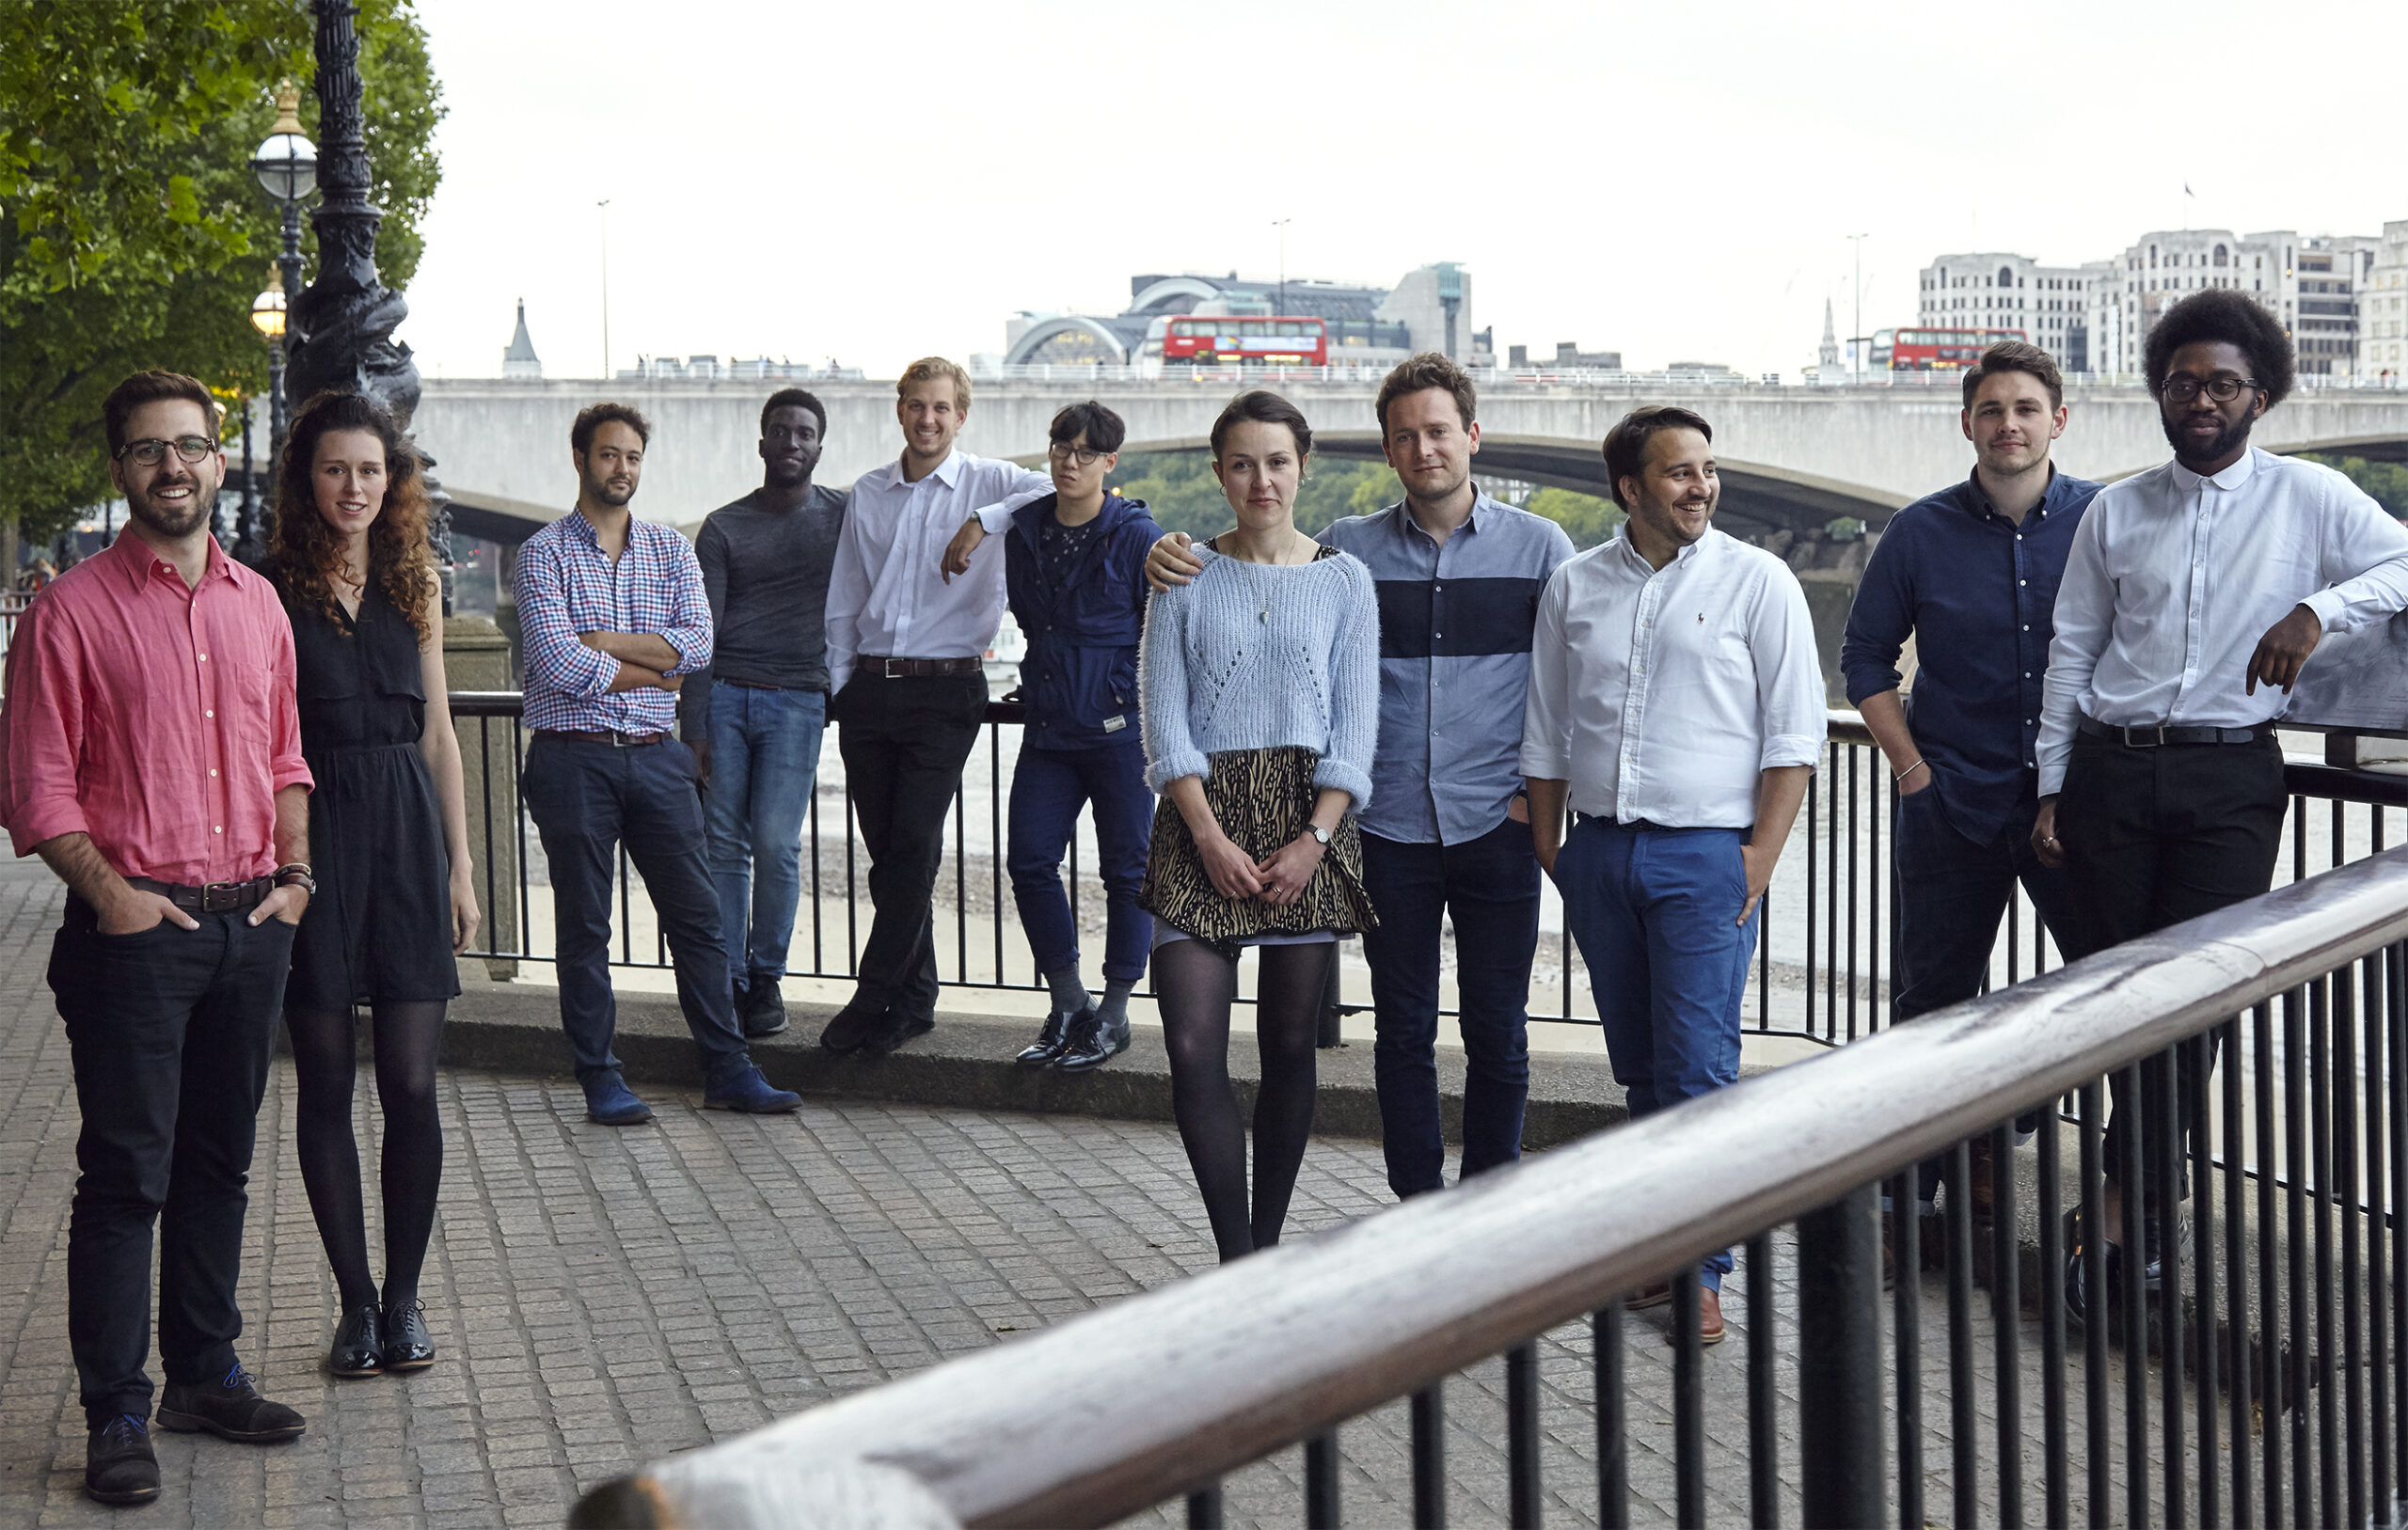 Fig. 24. Students photographed by River Thames, spring 2015, from left: Aleks Stojakovic, a lovely student who came to the photoshoot then sadly went to London Met, Frazer Haviz, Nathaniel Amissah, Alexander Frehse, Timothy Ng, Maeve Dolan, James MacKenzie, Stuart Goldsworthy-Trapp, Jack Idle and Raphael Arthur.